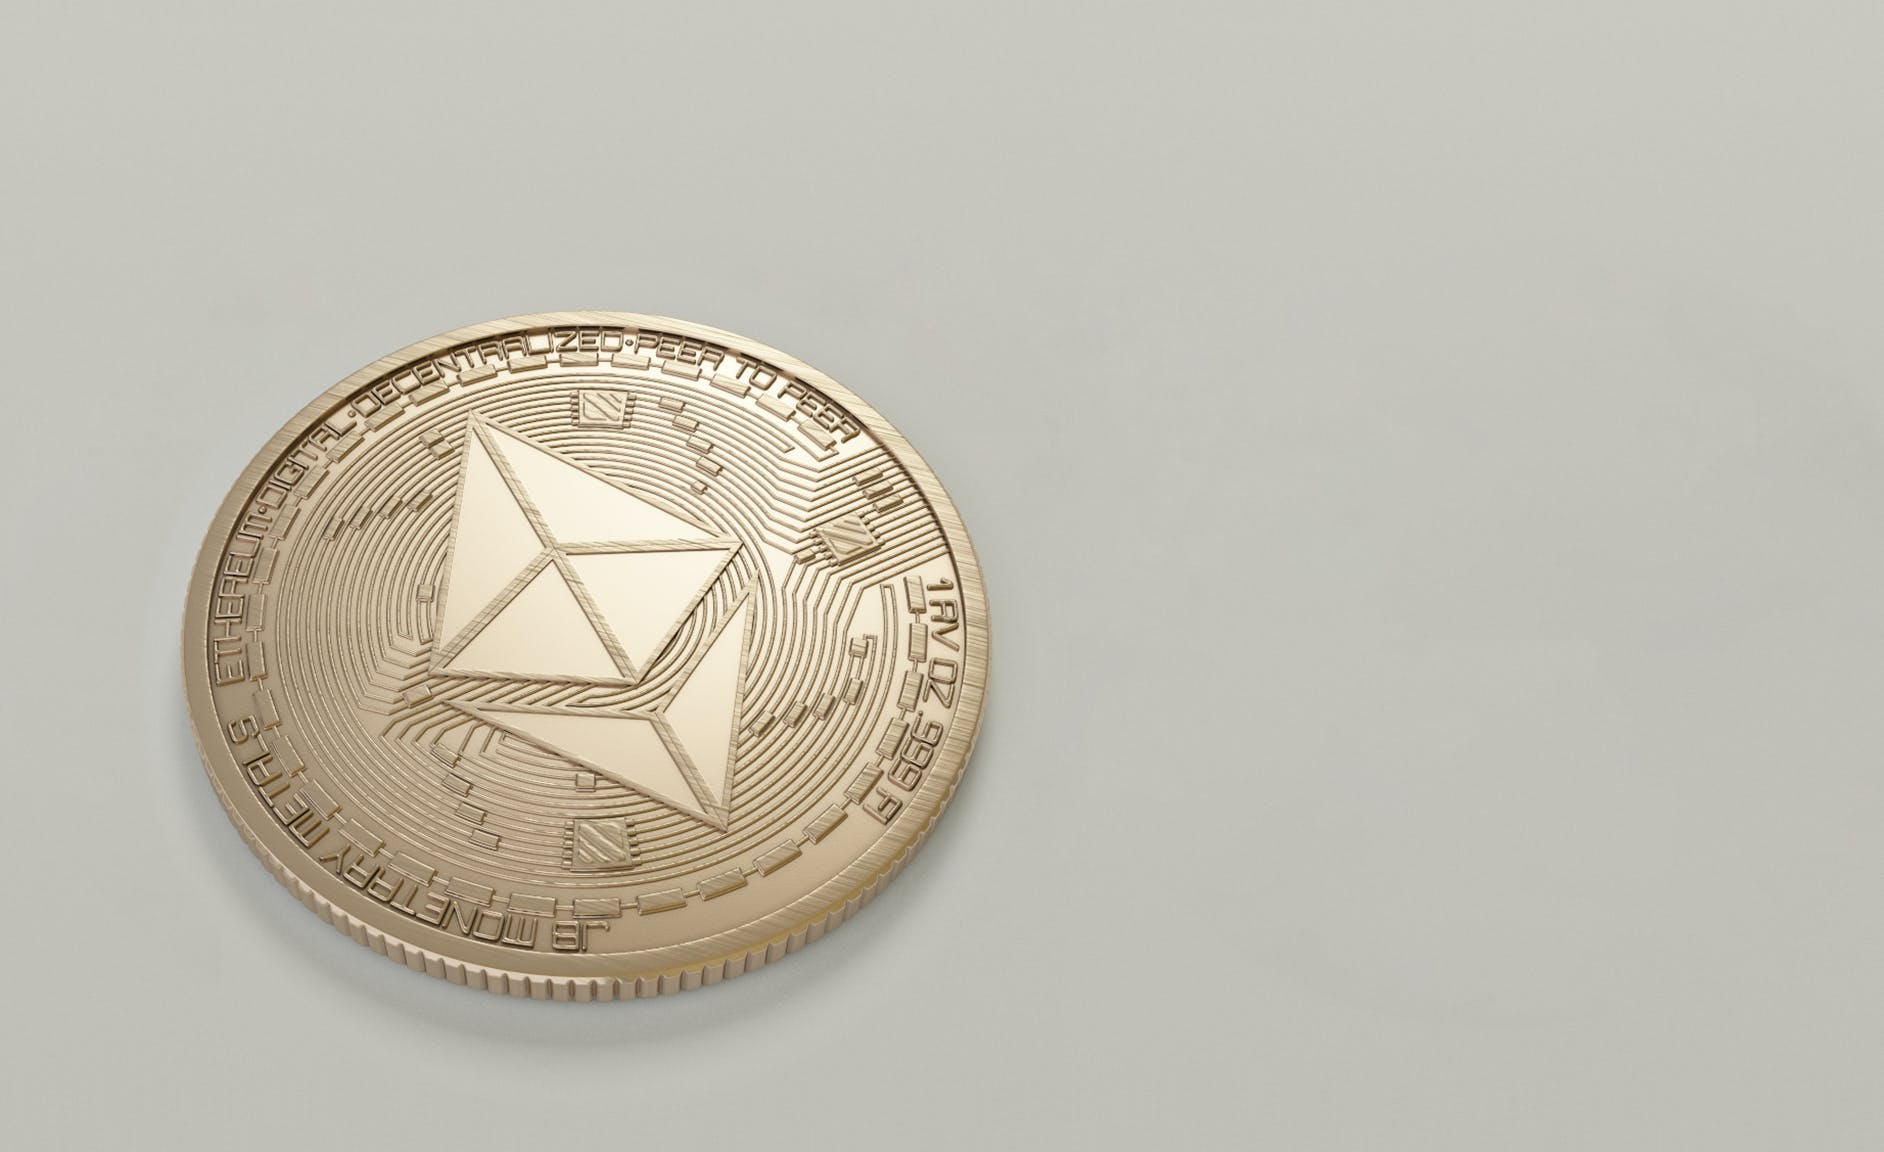 Round Gold-colored Ethereum Coin